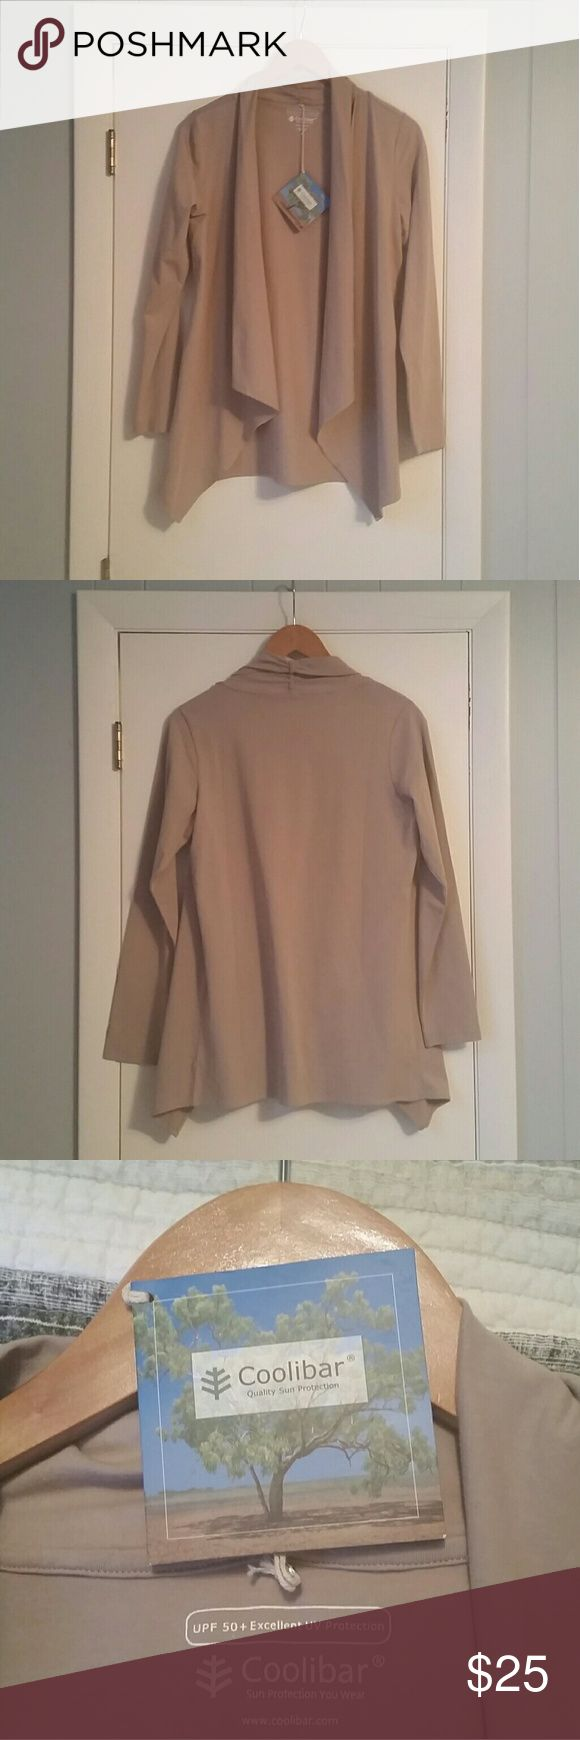 Women's Coolibar Open Cardigan Women's Coolibar Open Cardigan, Size Small, UPF 50 + Excellent UV Protection.  New with tags. Coolibar  Tops